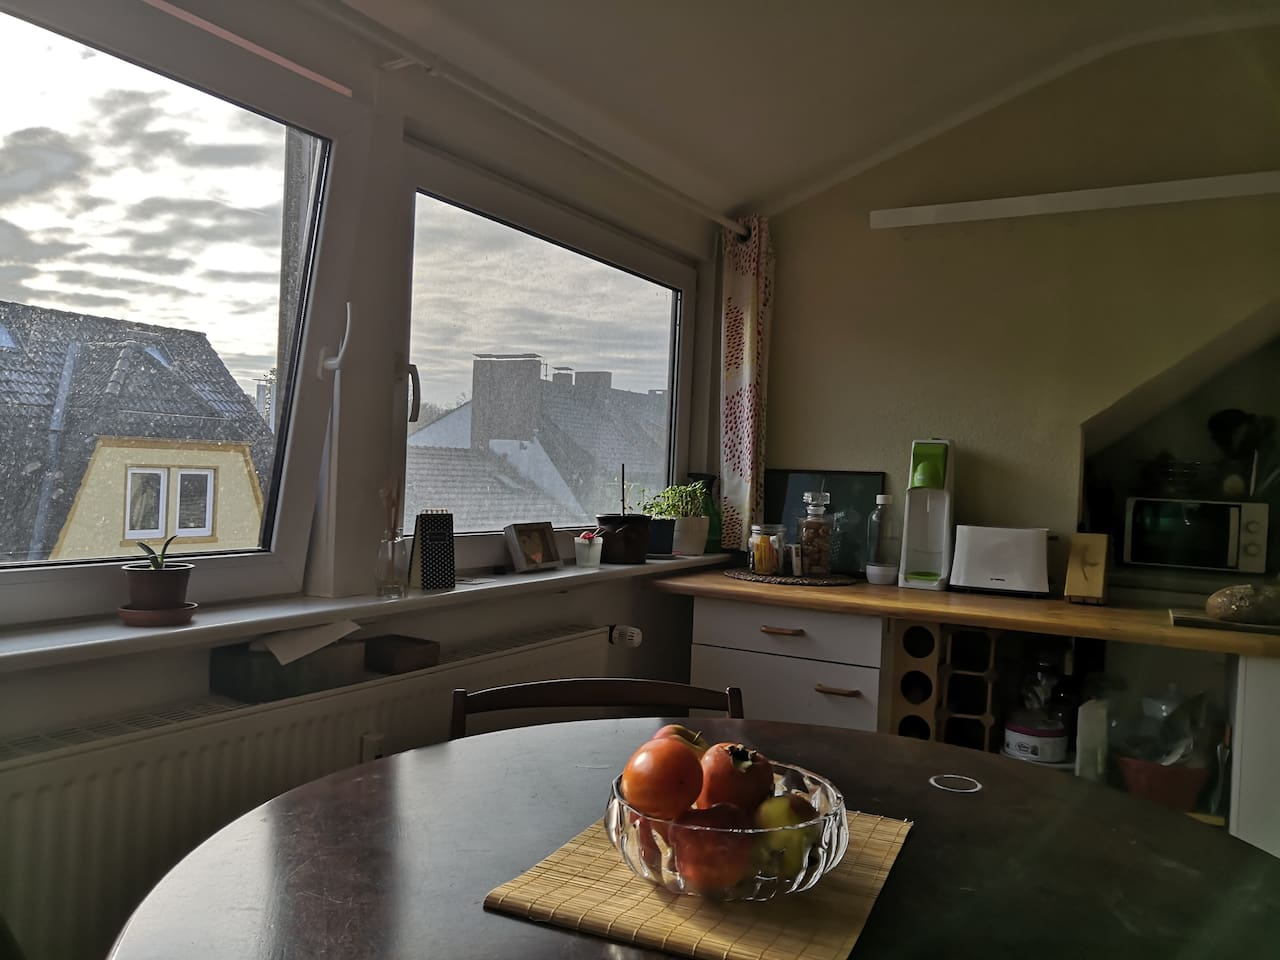 Morgensonne in der Wohnküche // Morning sun in the combined kitchen/living room.